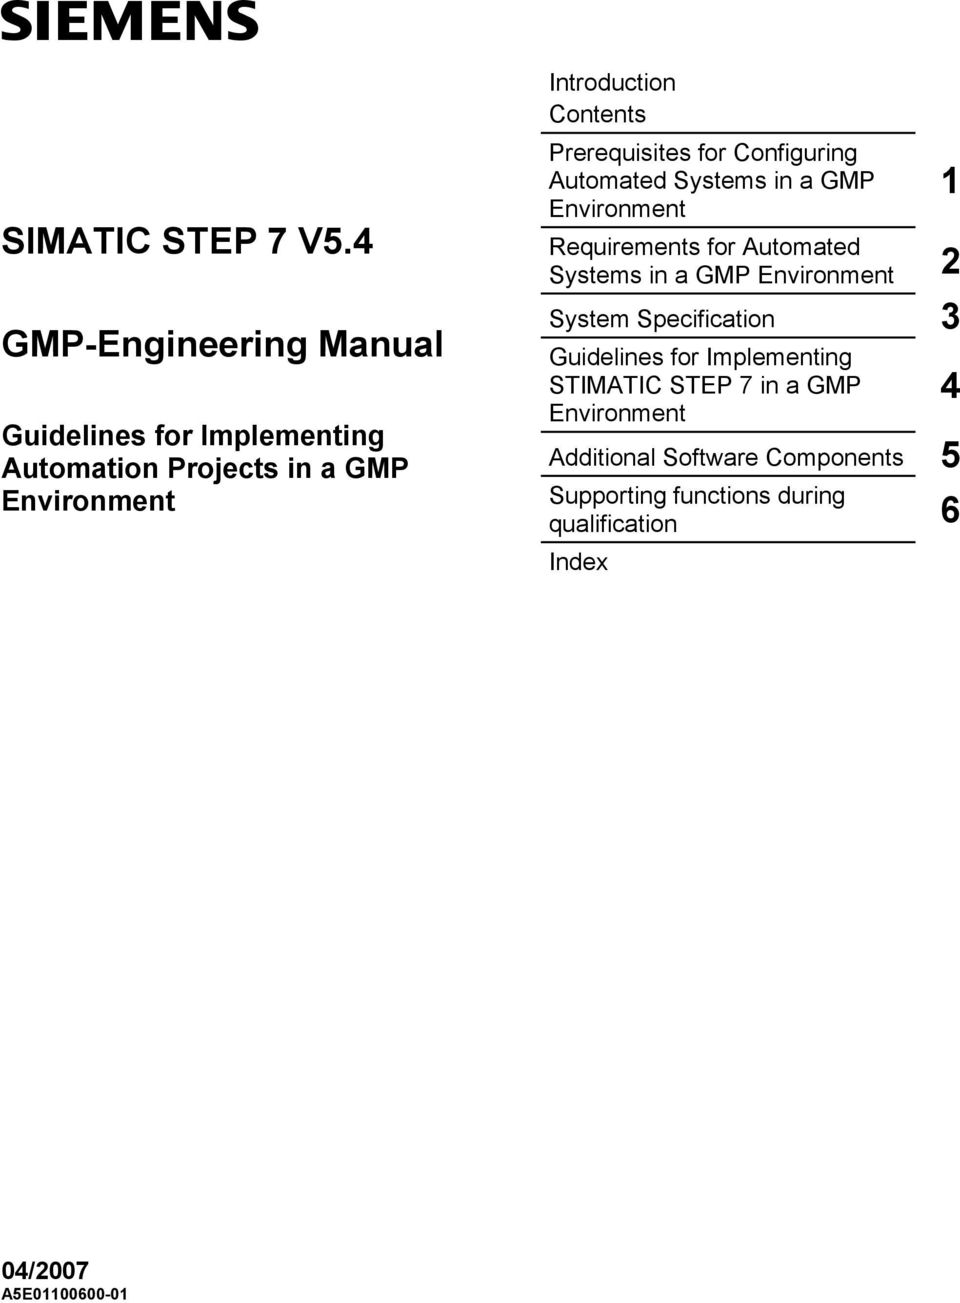 simatic step 7 v5 4 gmp engineering manual guidelines for rh docplayer net